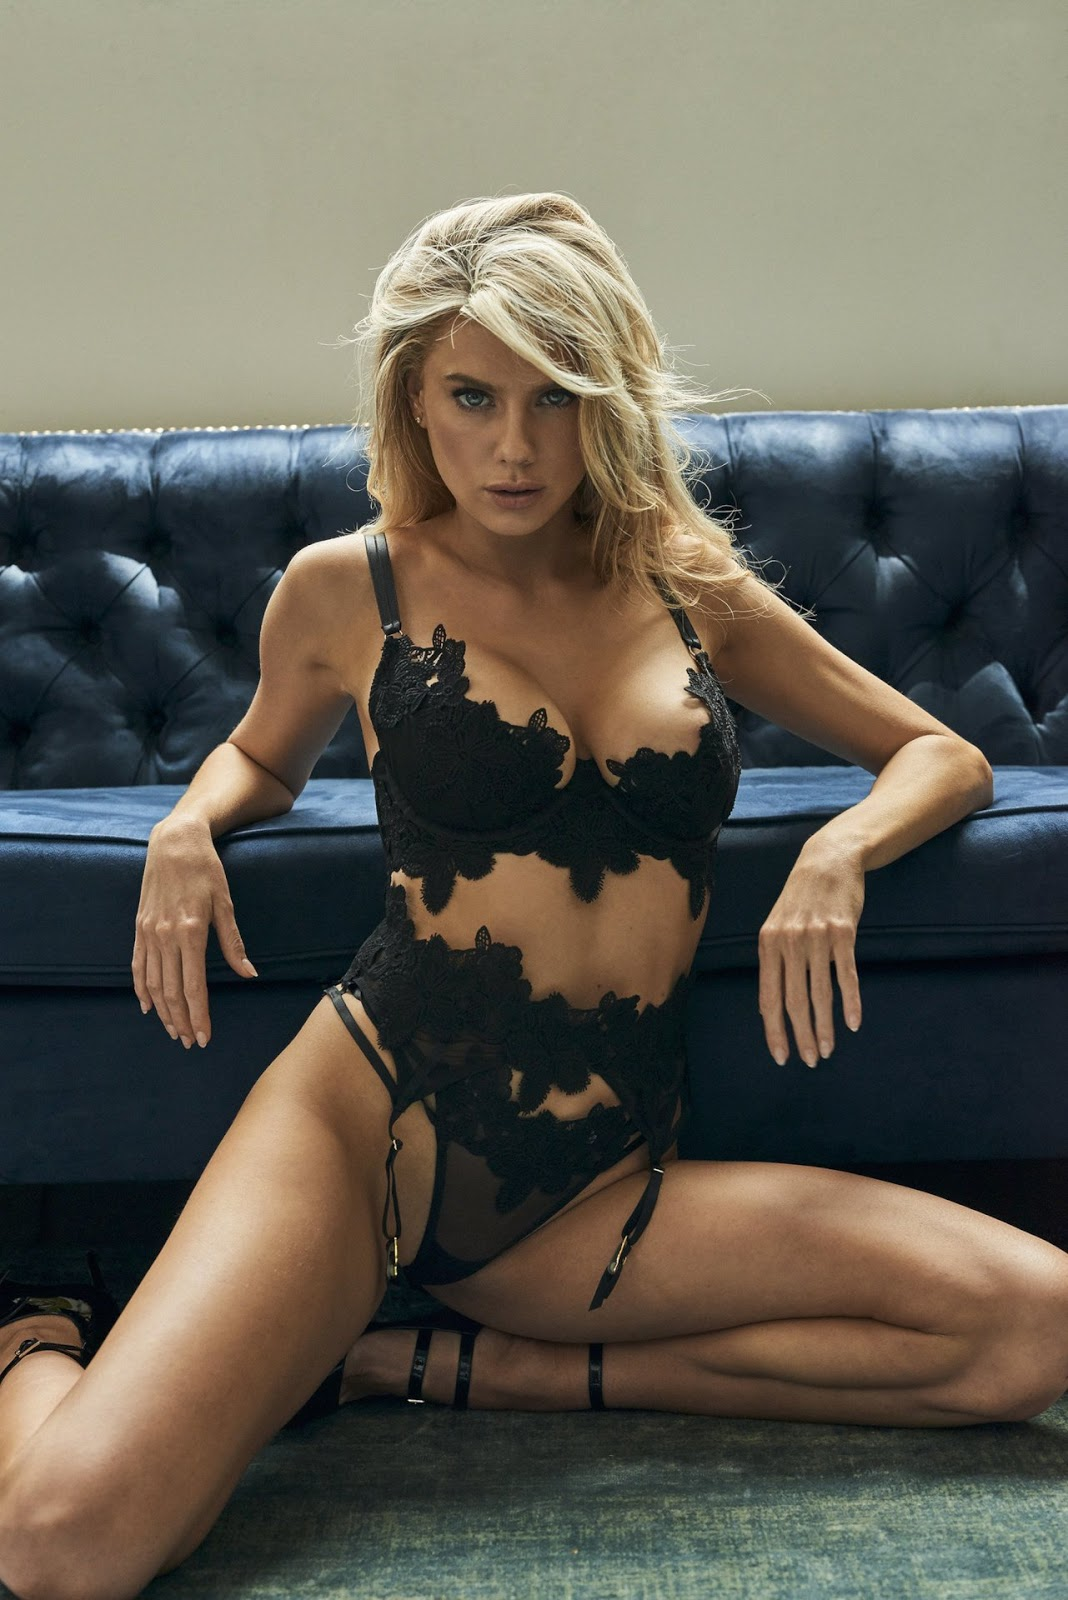 Wolf and Whistle collaborates with Charlotte McKinney